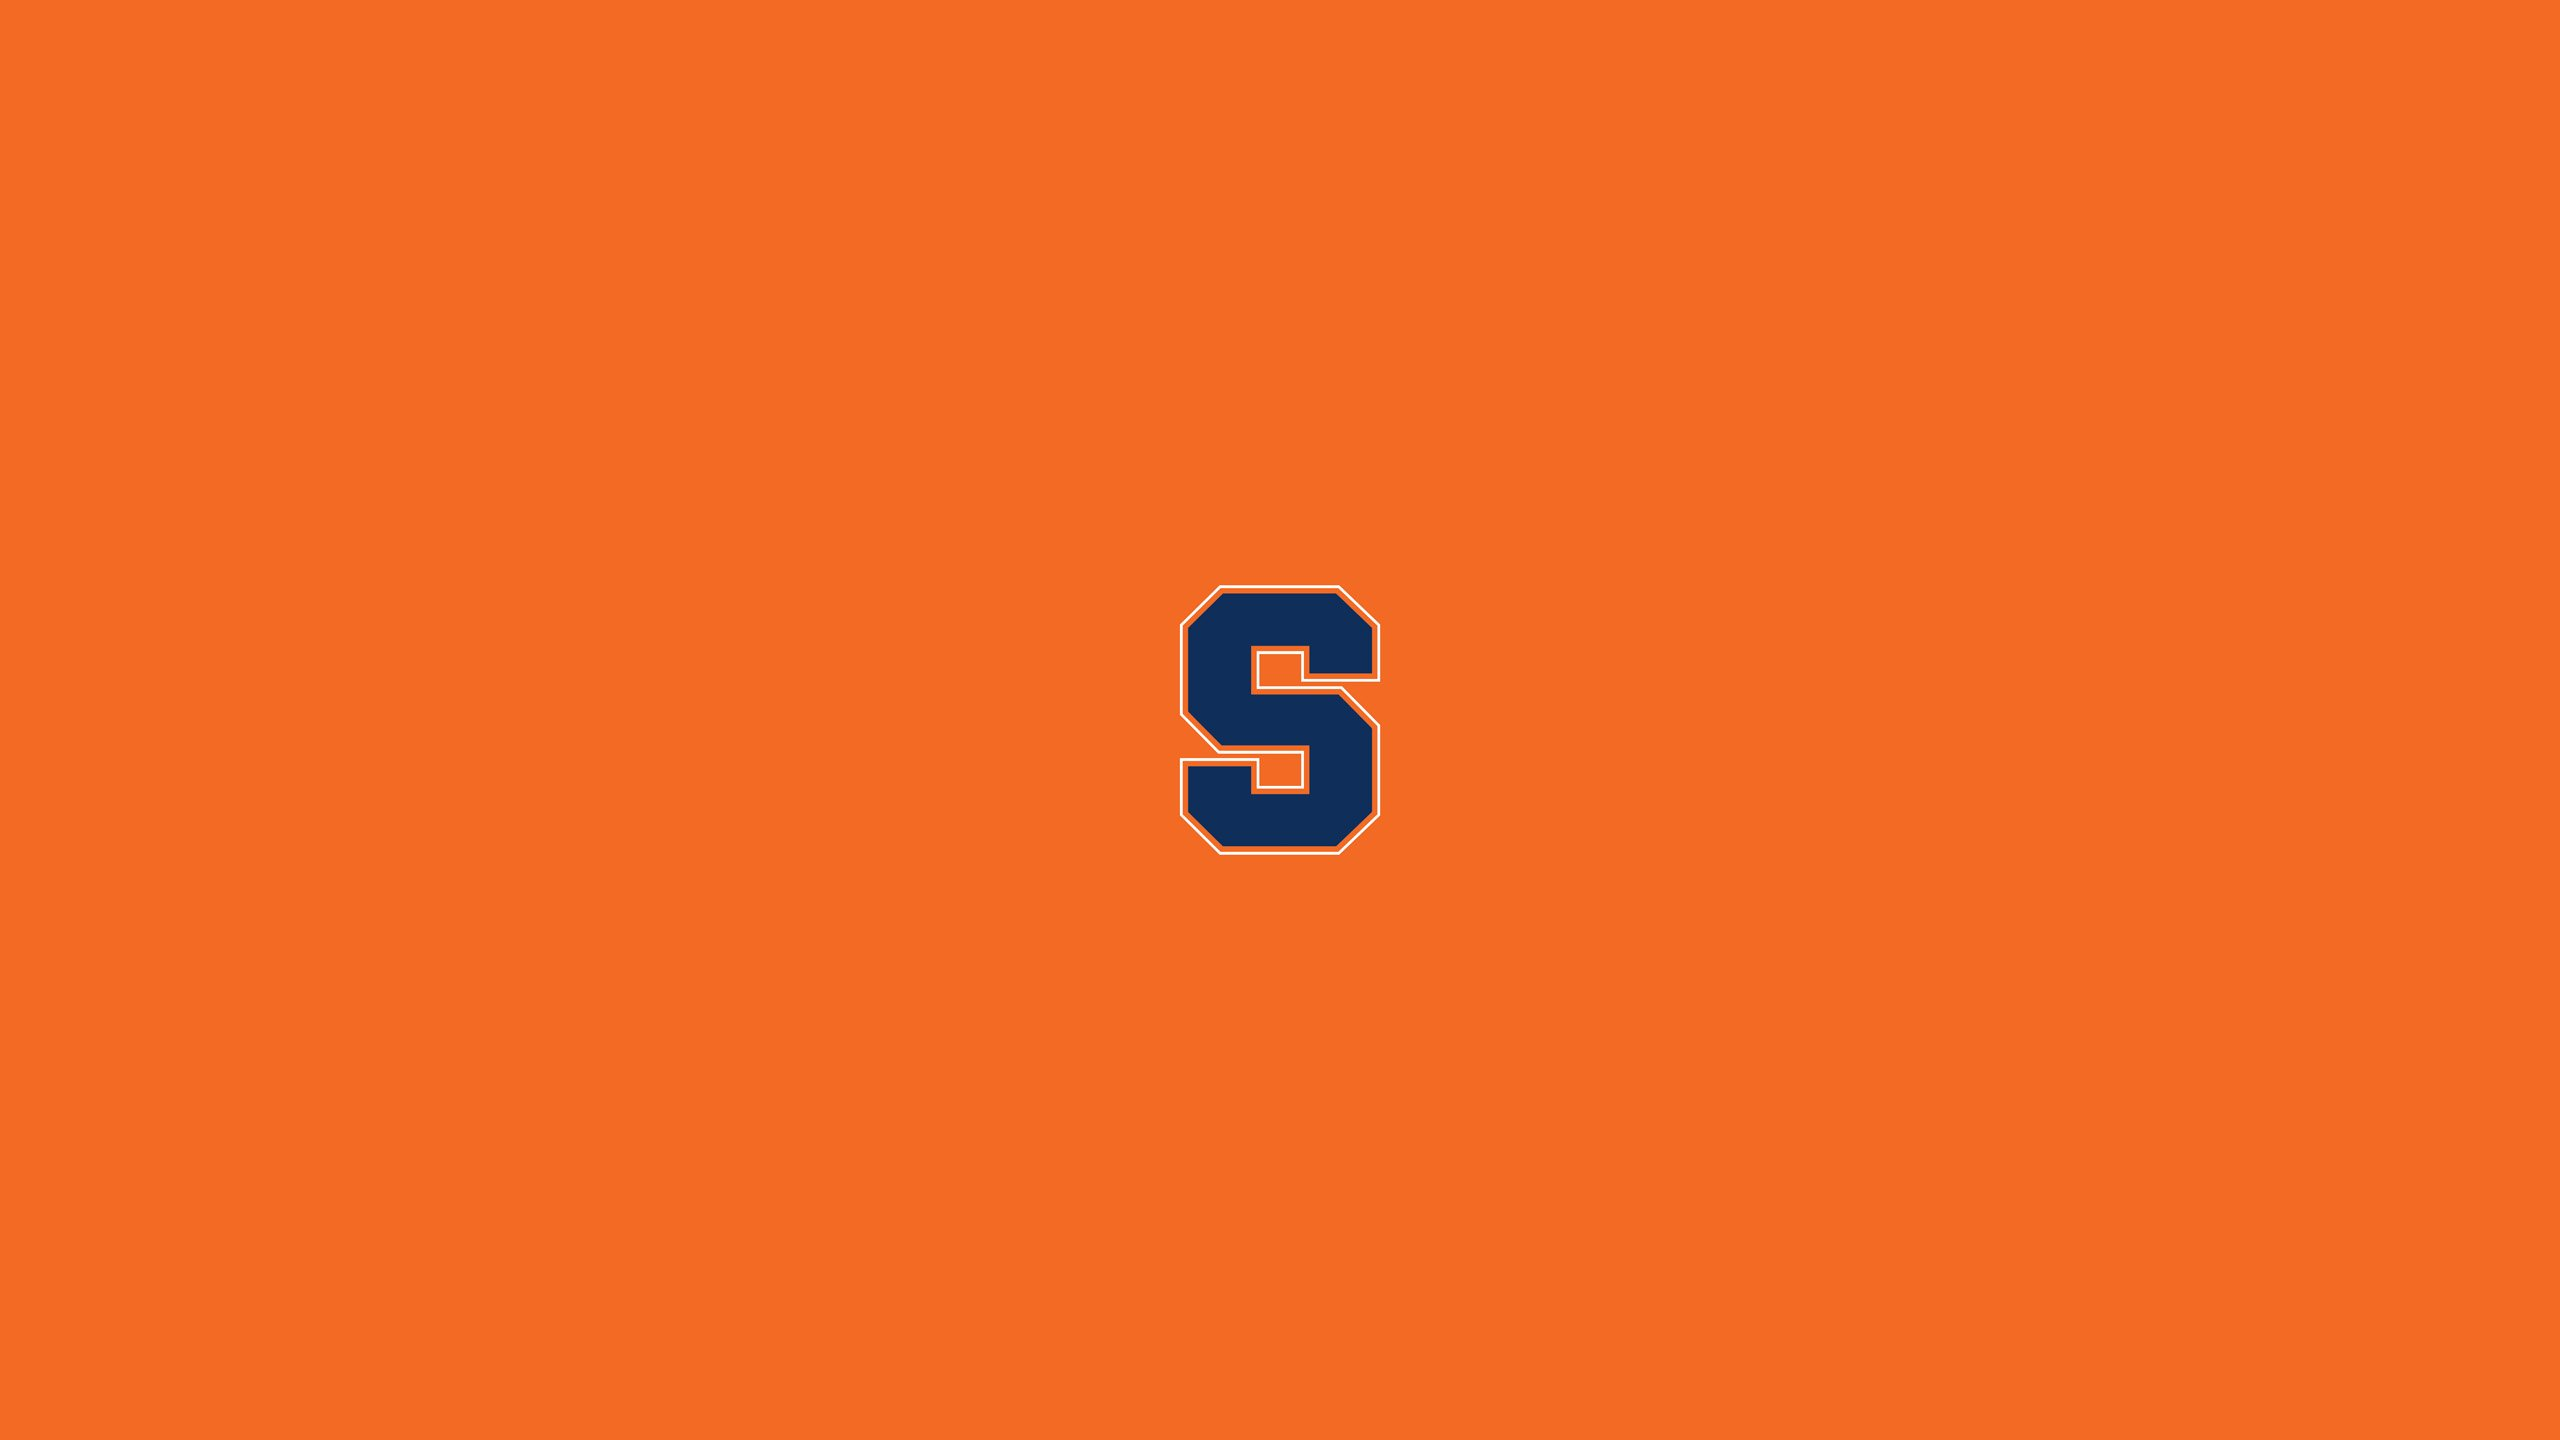 syracuse university clip art - photo #19